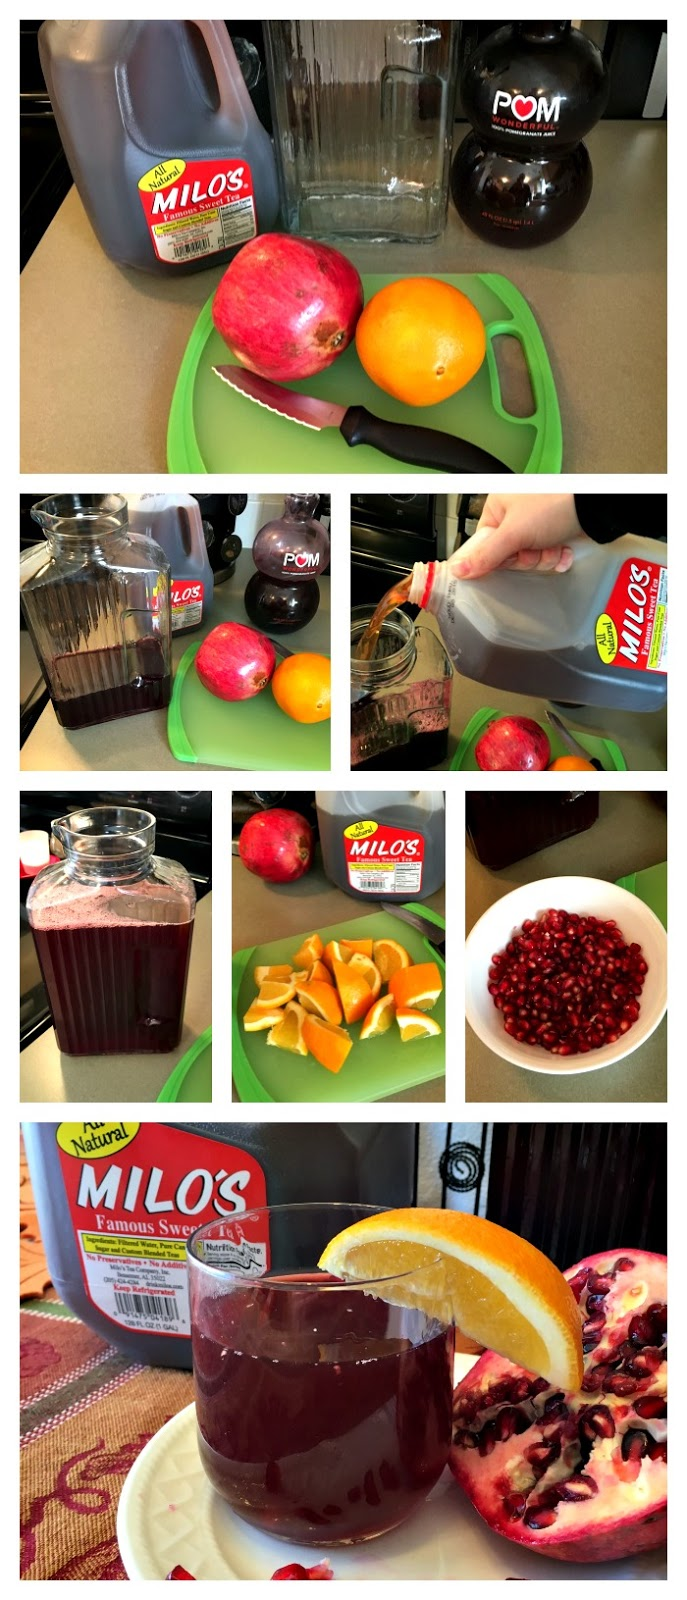 Pomegranate Citrus Sweet Tea, Sweet Tea Recipes with fresh fruit, Milo's Sweet Tea Recipes, Holiday preparation, Milo's Tea, Family Tea, #Pmedia, #HolidayswithMilos, #DrinkMilos